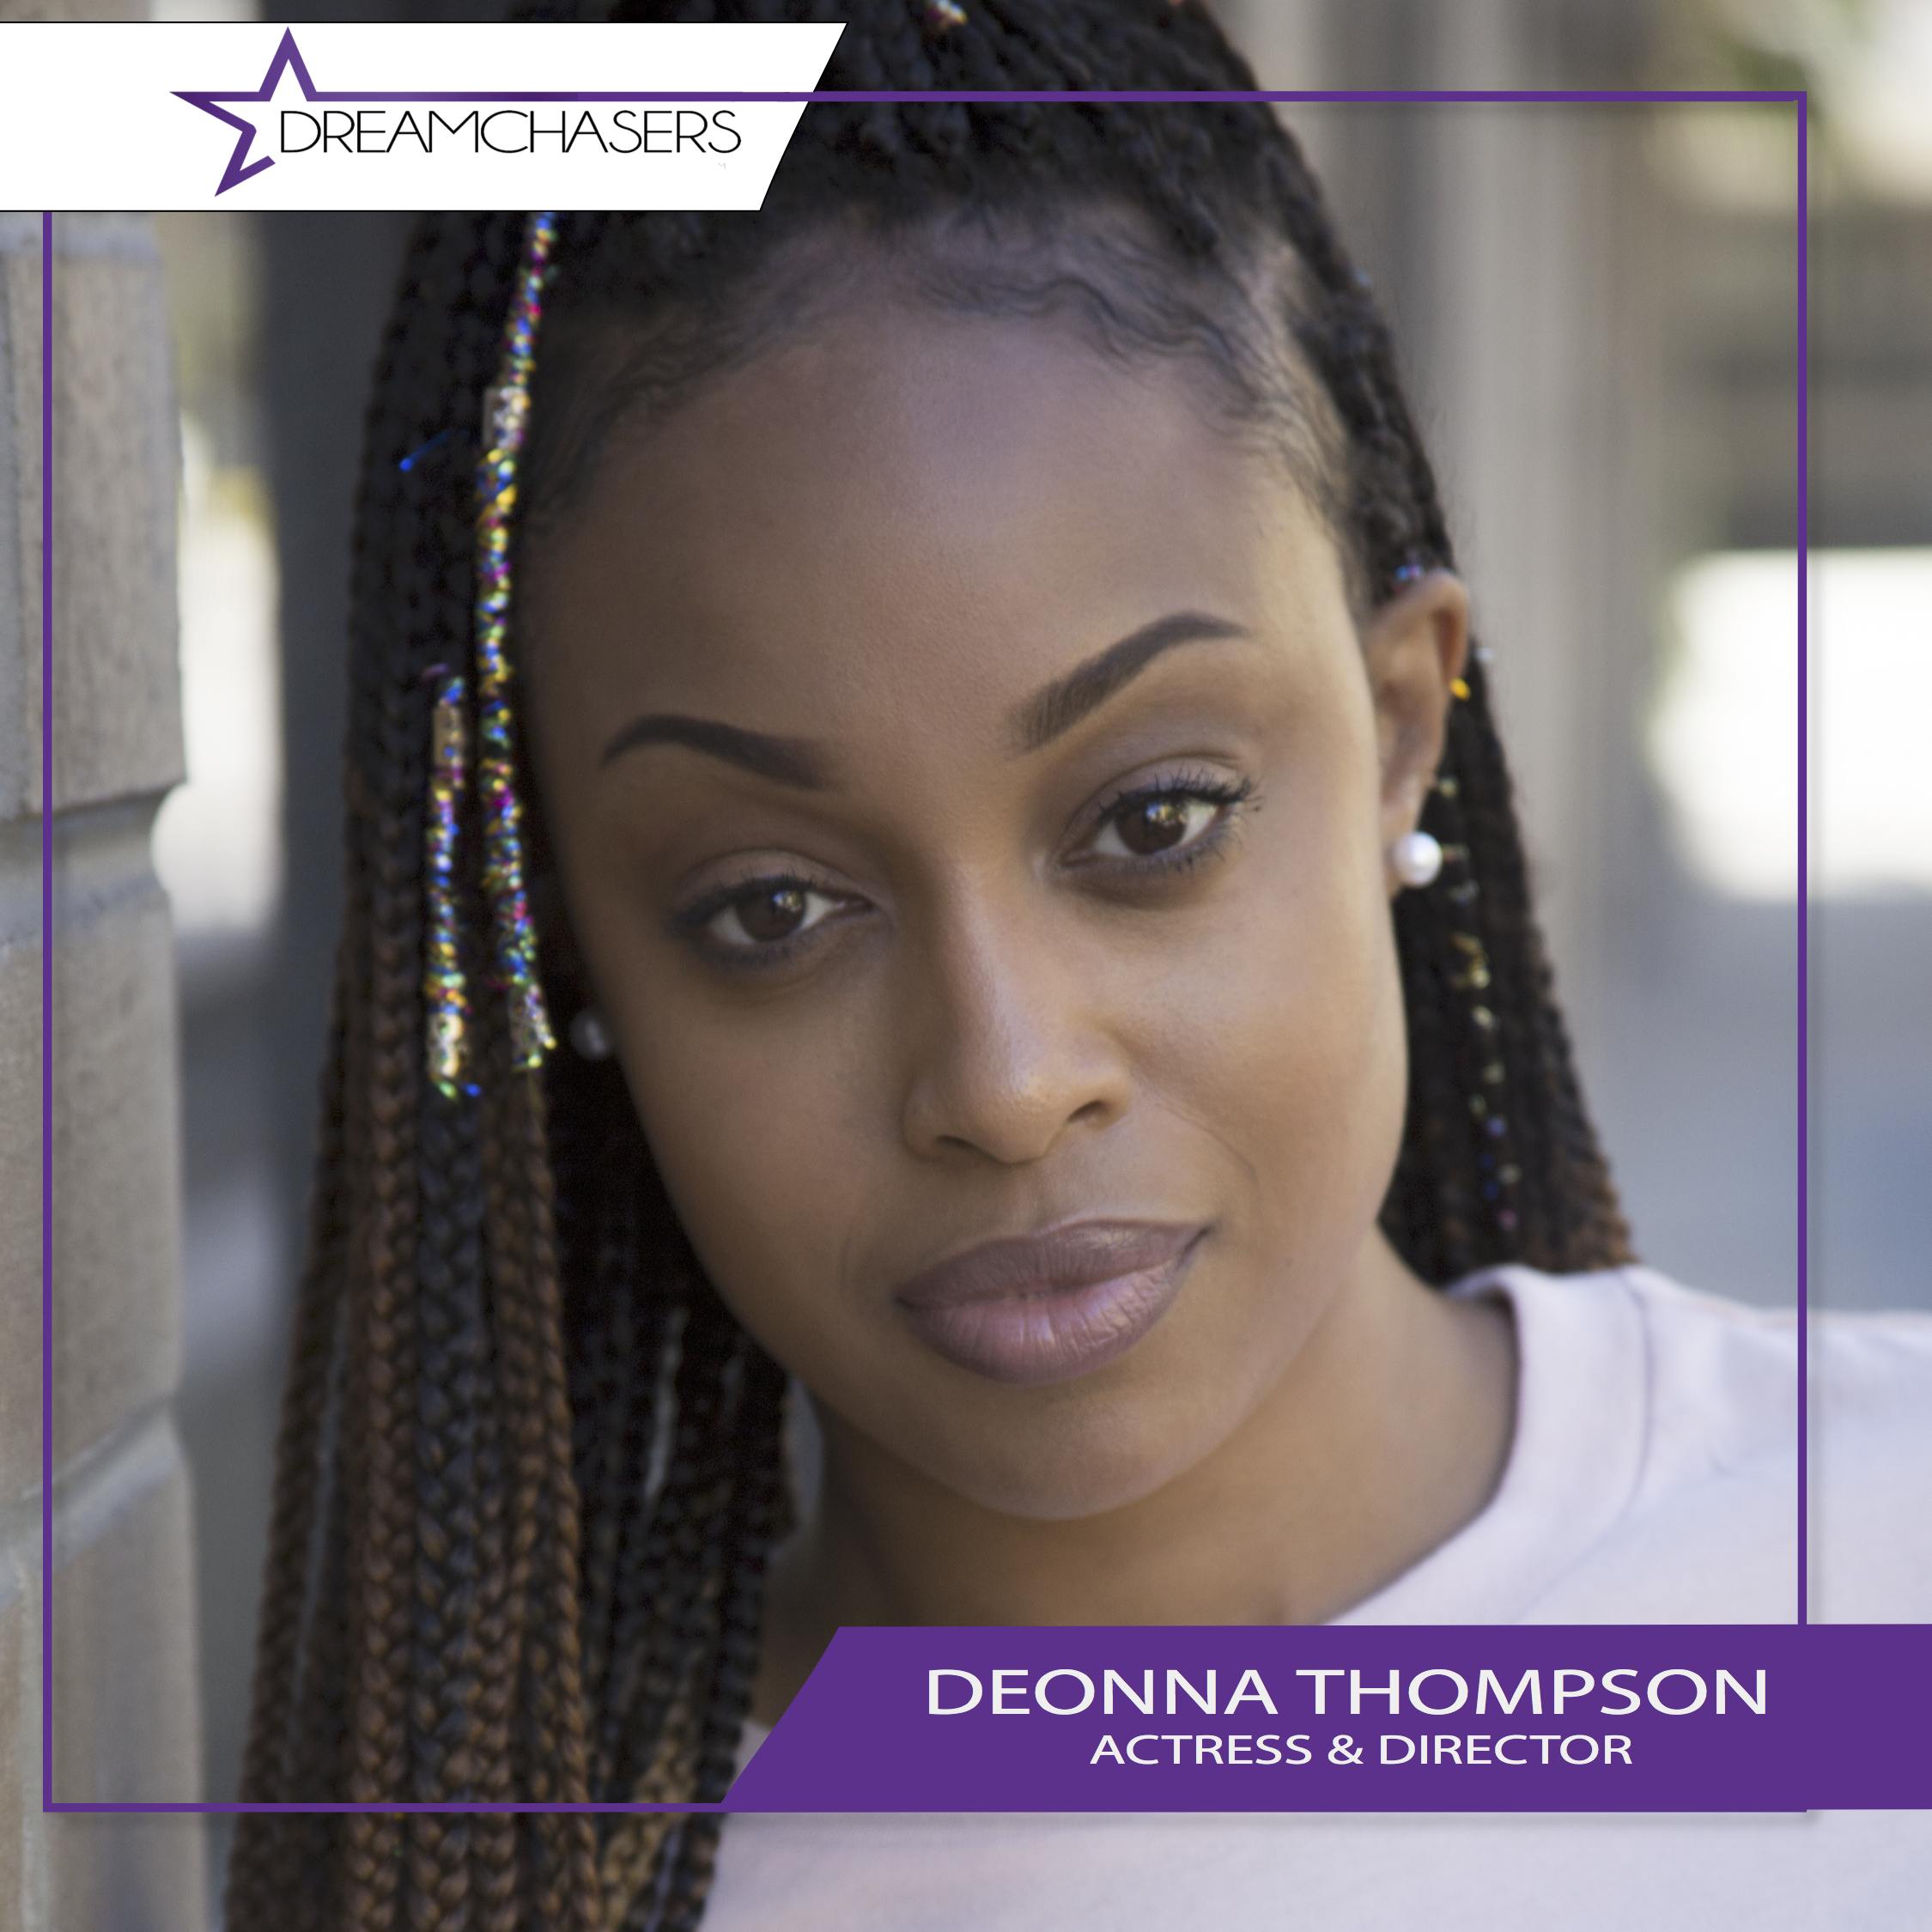 DreamChasers_Deonna2_Graphicp.png